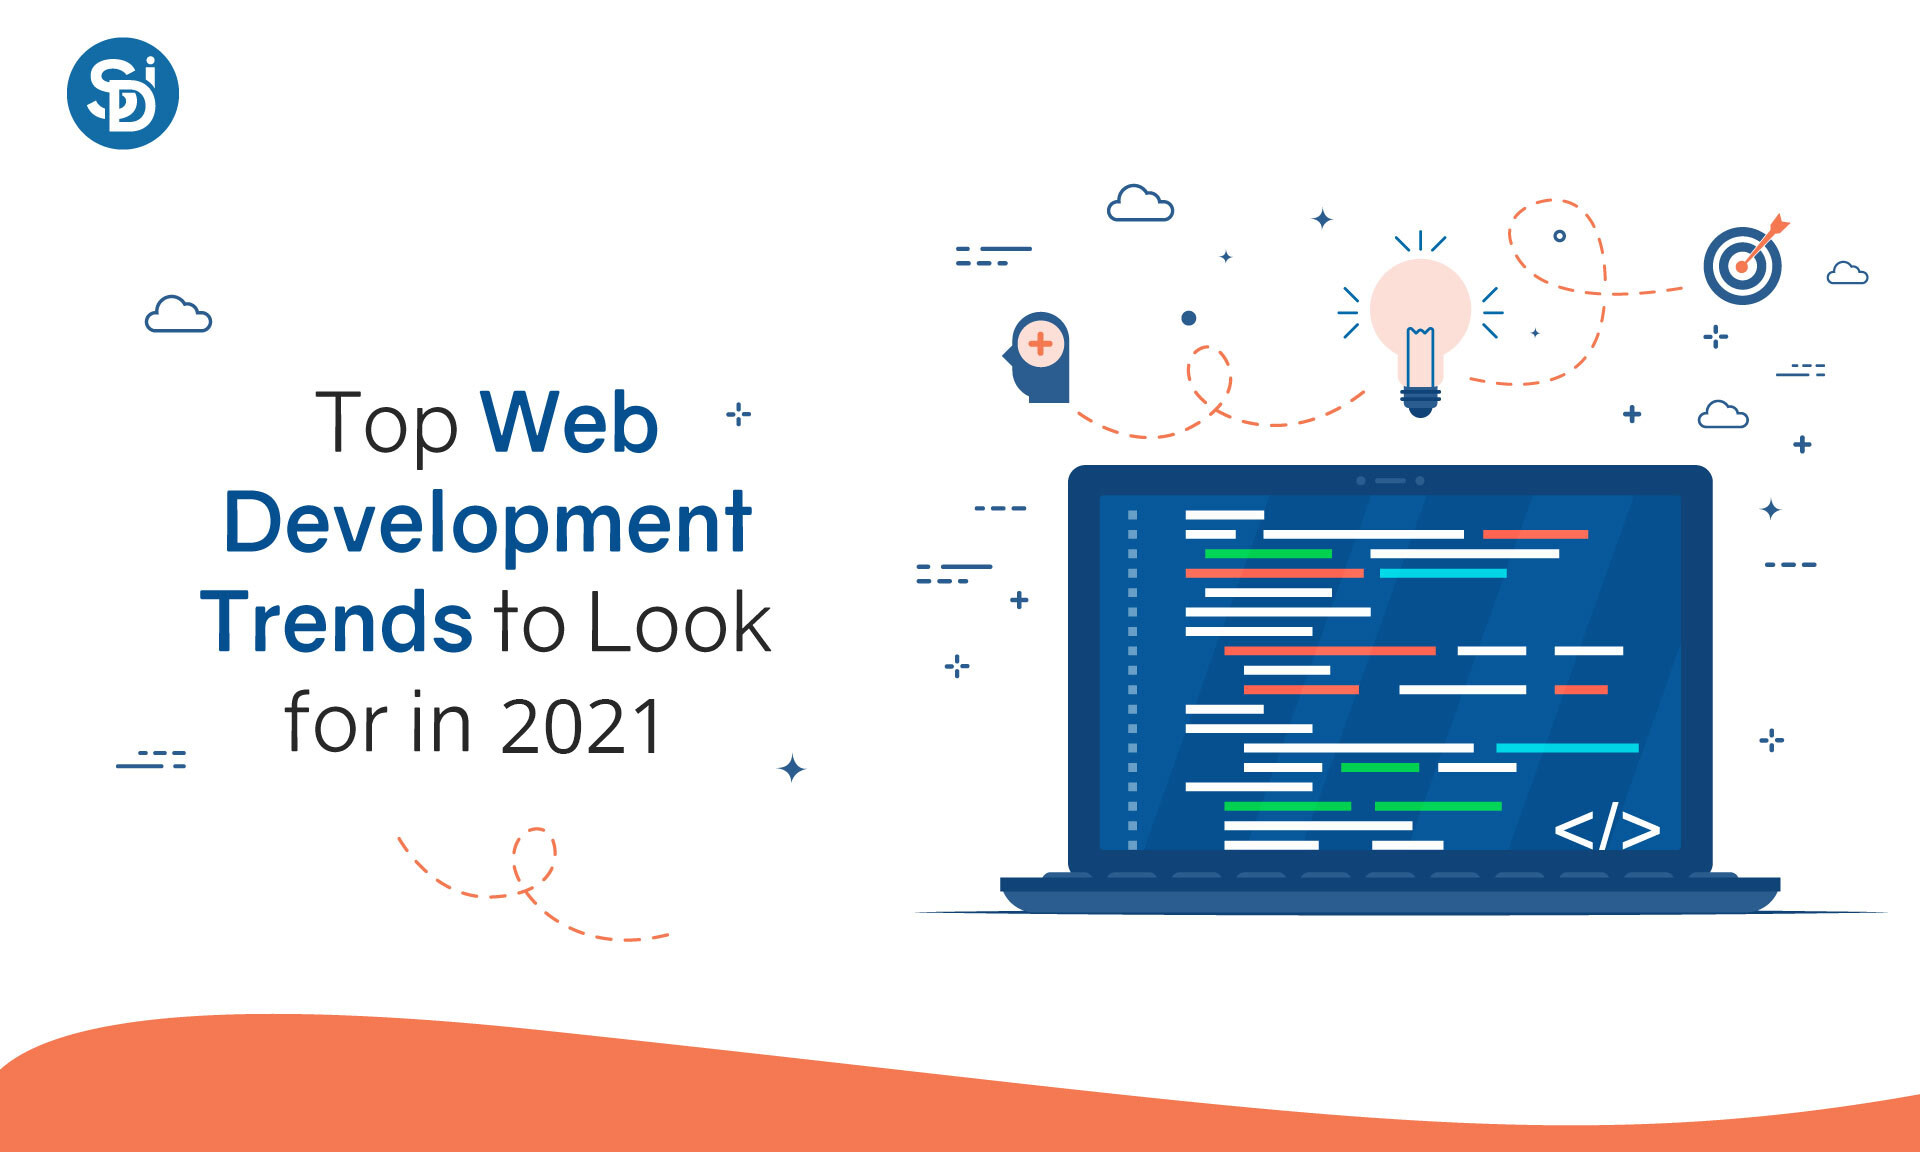 Top Web Development Trends to Look